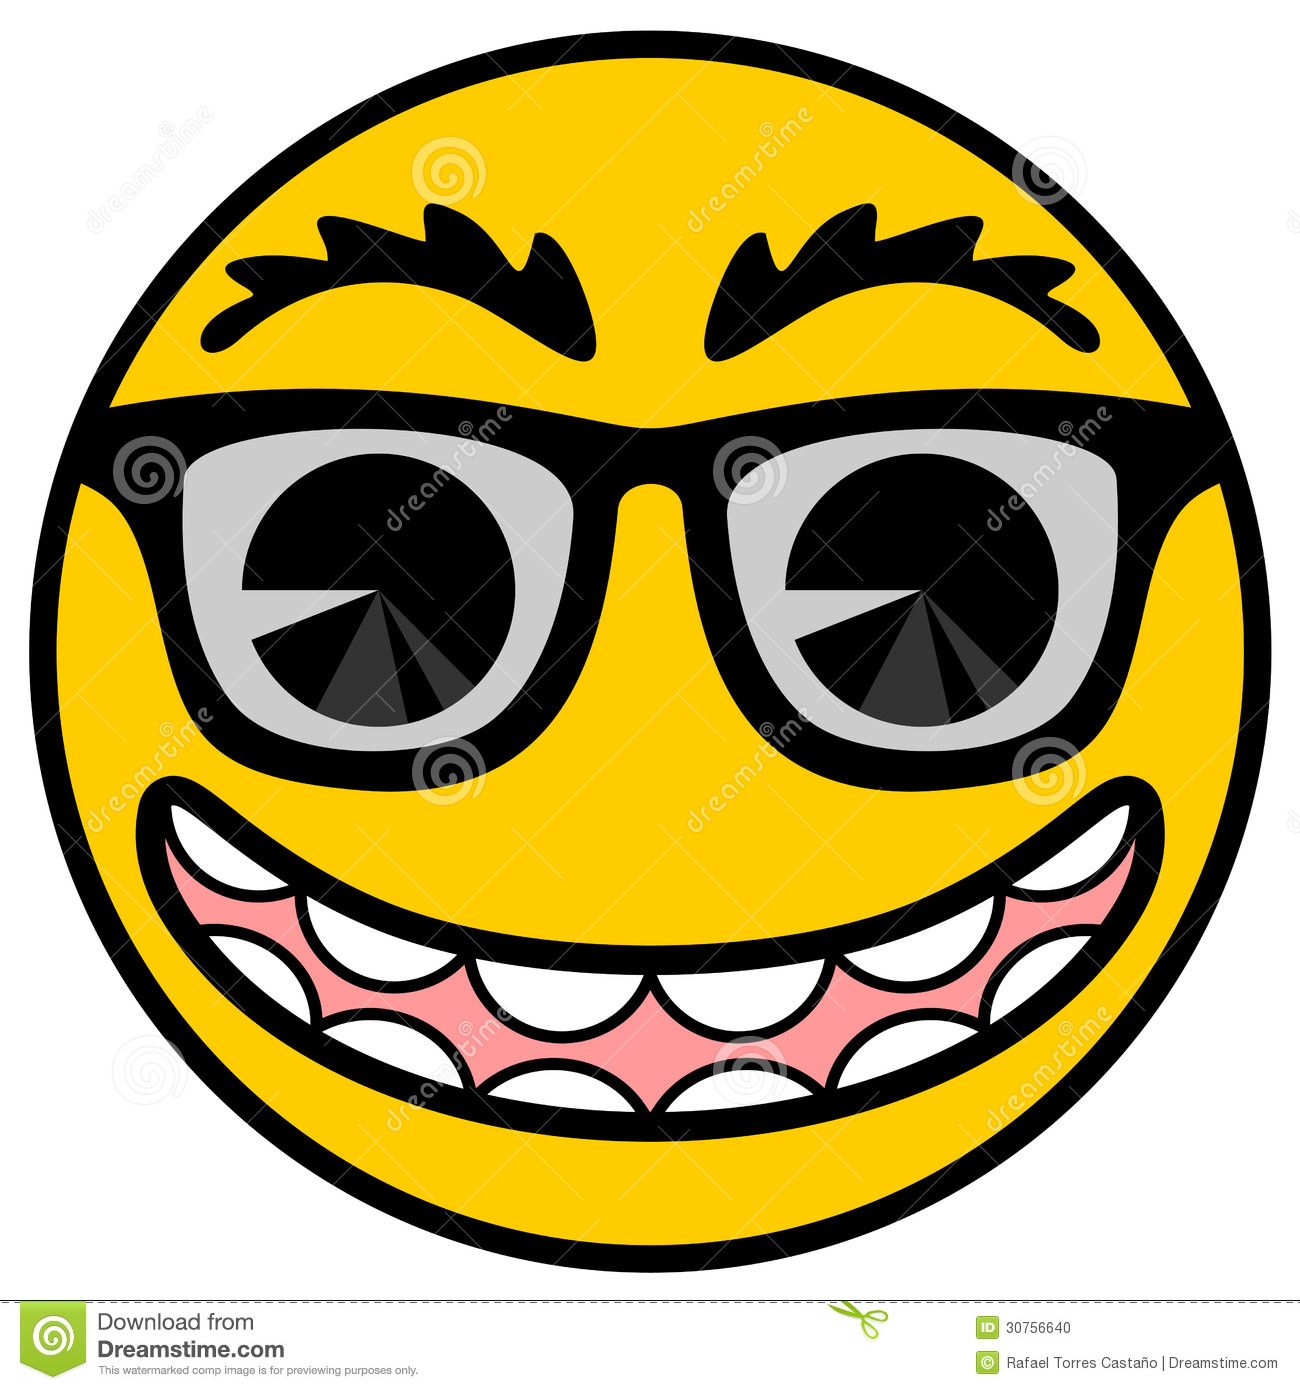 Smile cartoon stock vector. Illustration of laughter - 30756640